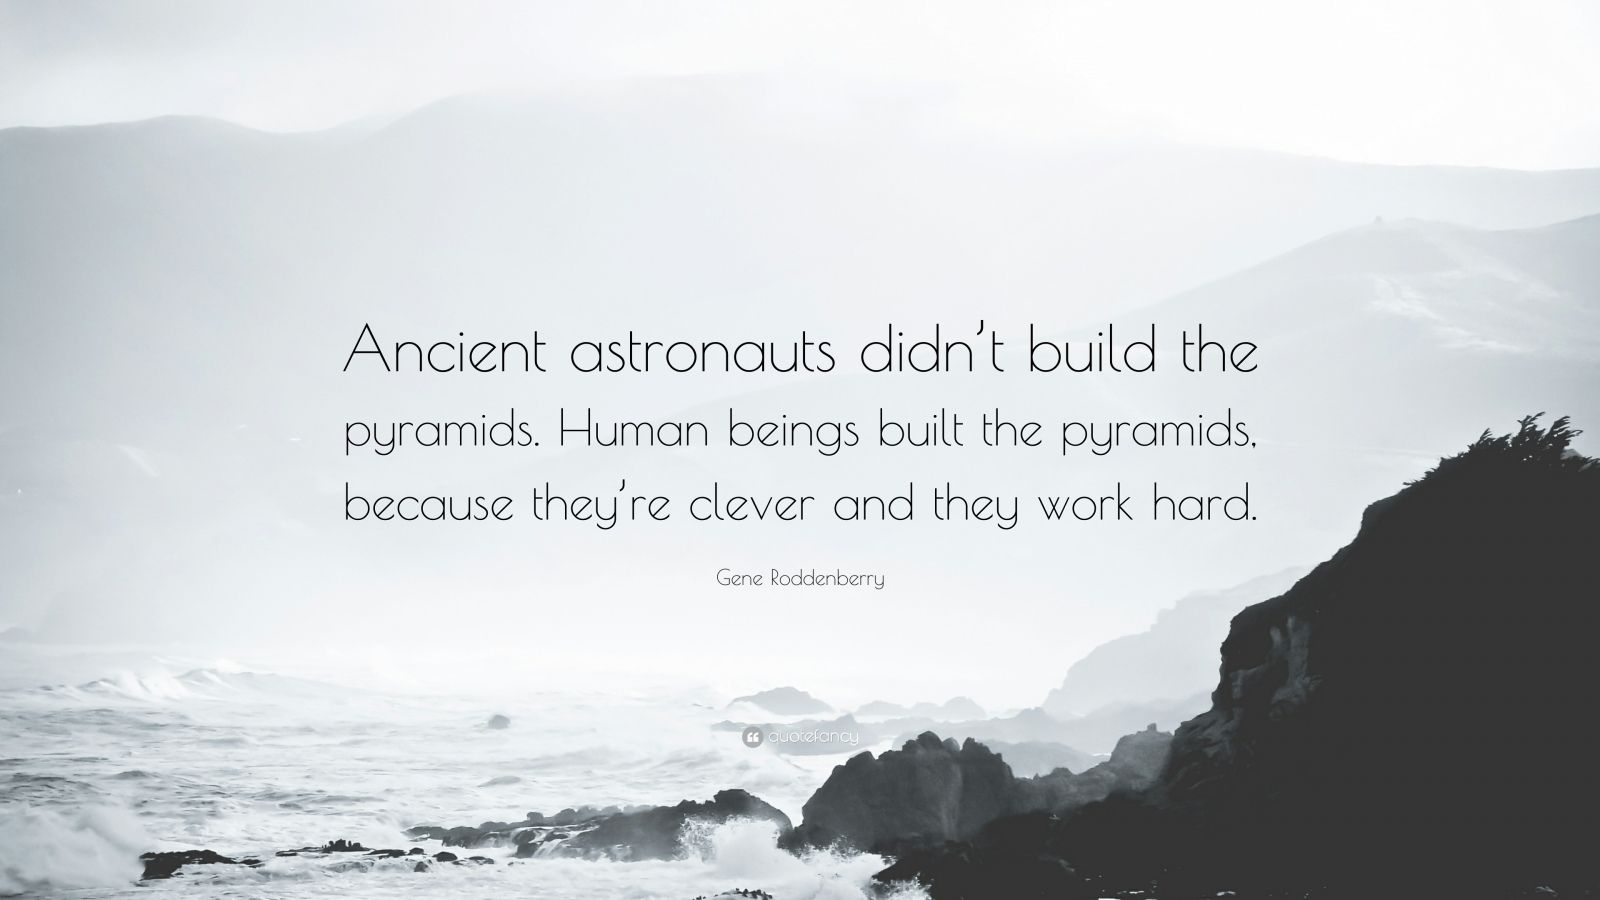 """Gene Roddenberry Quote: """"Ancient astronauts didn't build the pyramids. Human beings built the pyramids, because they're clever and they work hard."""""""